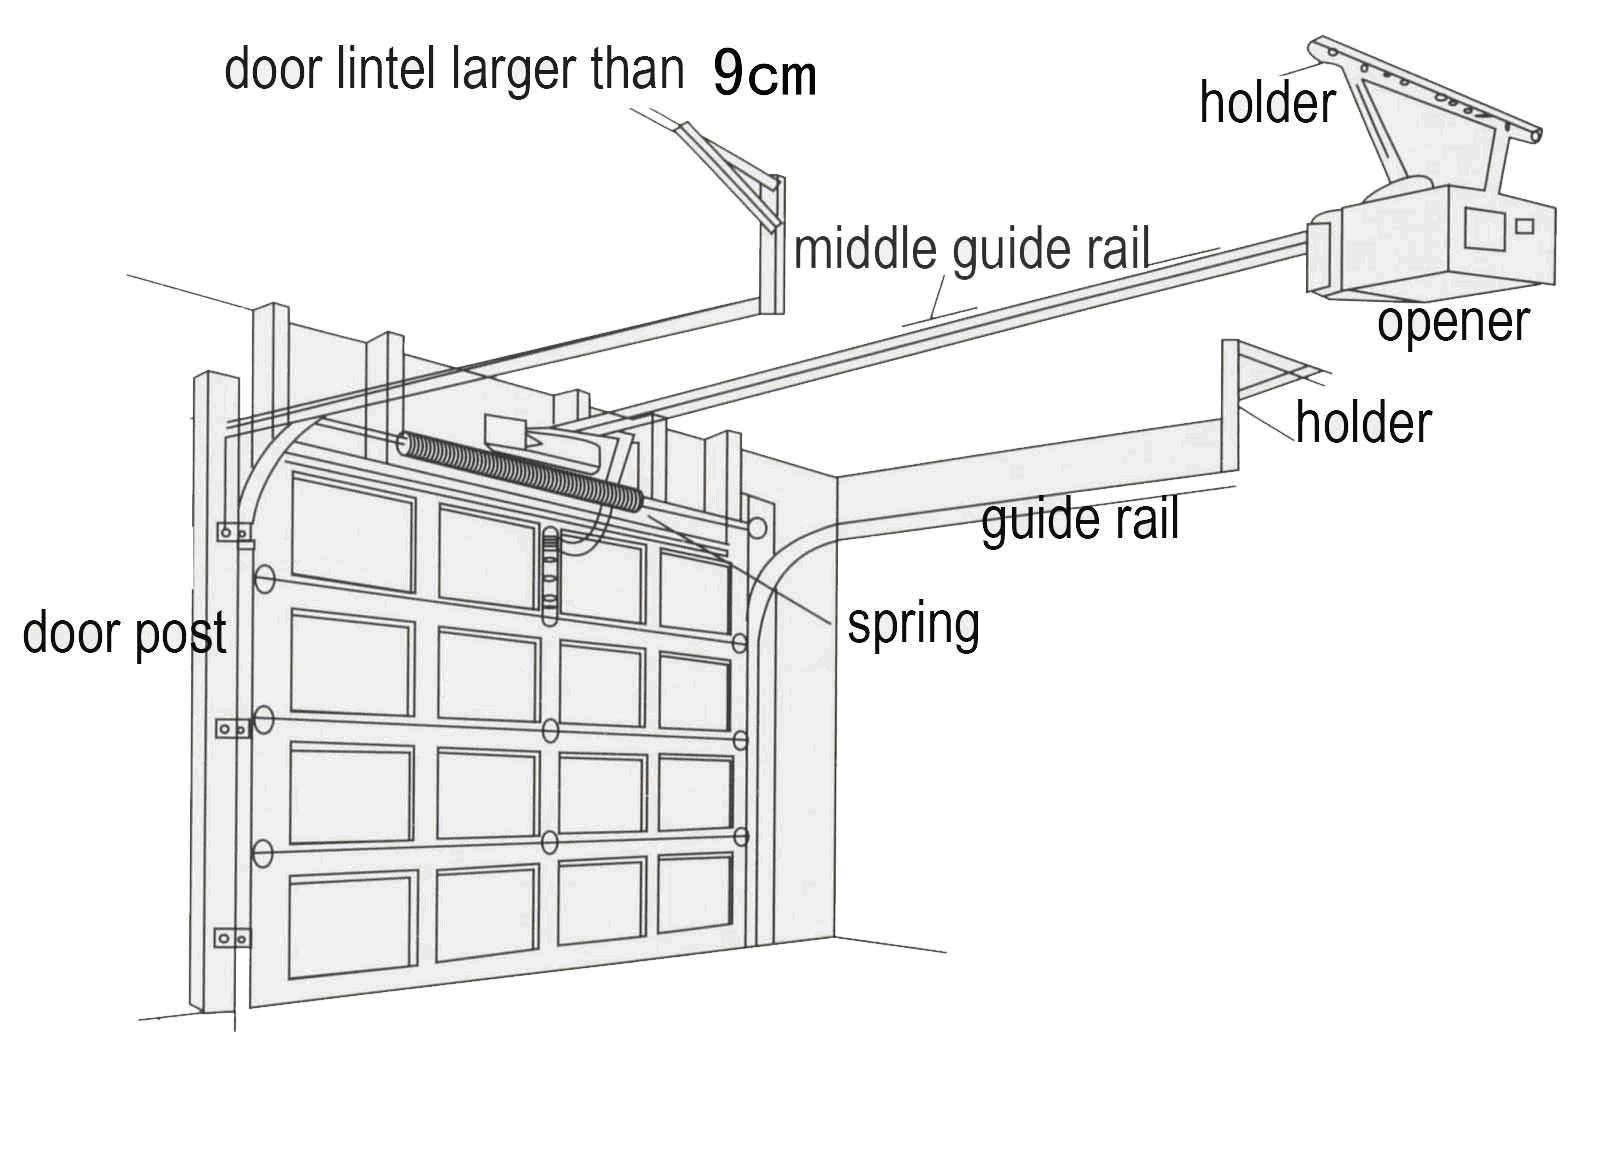 garage door replacement cost buzzle web portal intelligent life